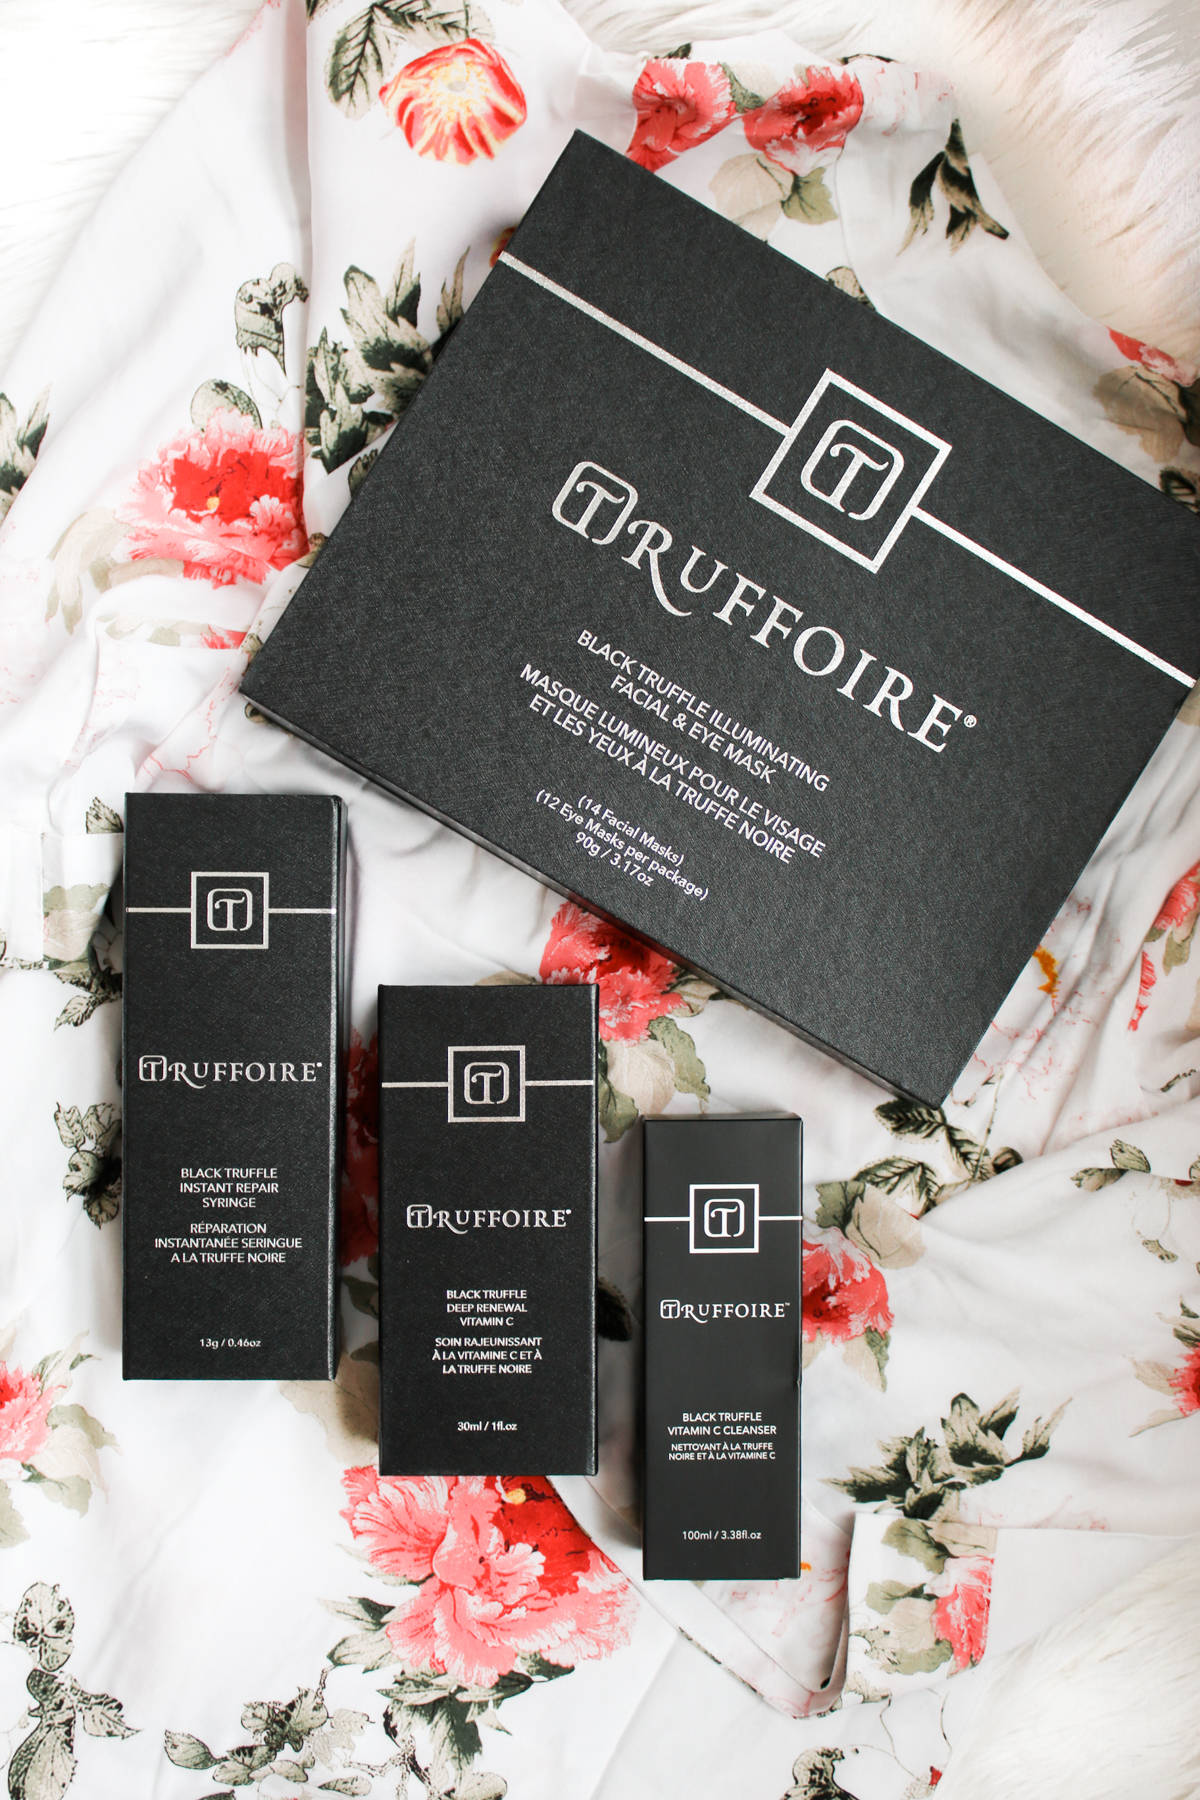 Truffoire skin care review, black truffle skincare, truffle skincare, Truffoire Review: The Benefits of Black Truffle Skincare by beauty blogger Stephanie Ziajka from Diary of a Debutante, Truffoire Black Collection review, Truffoire review